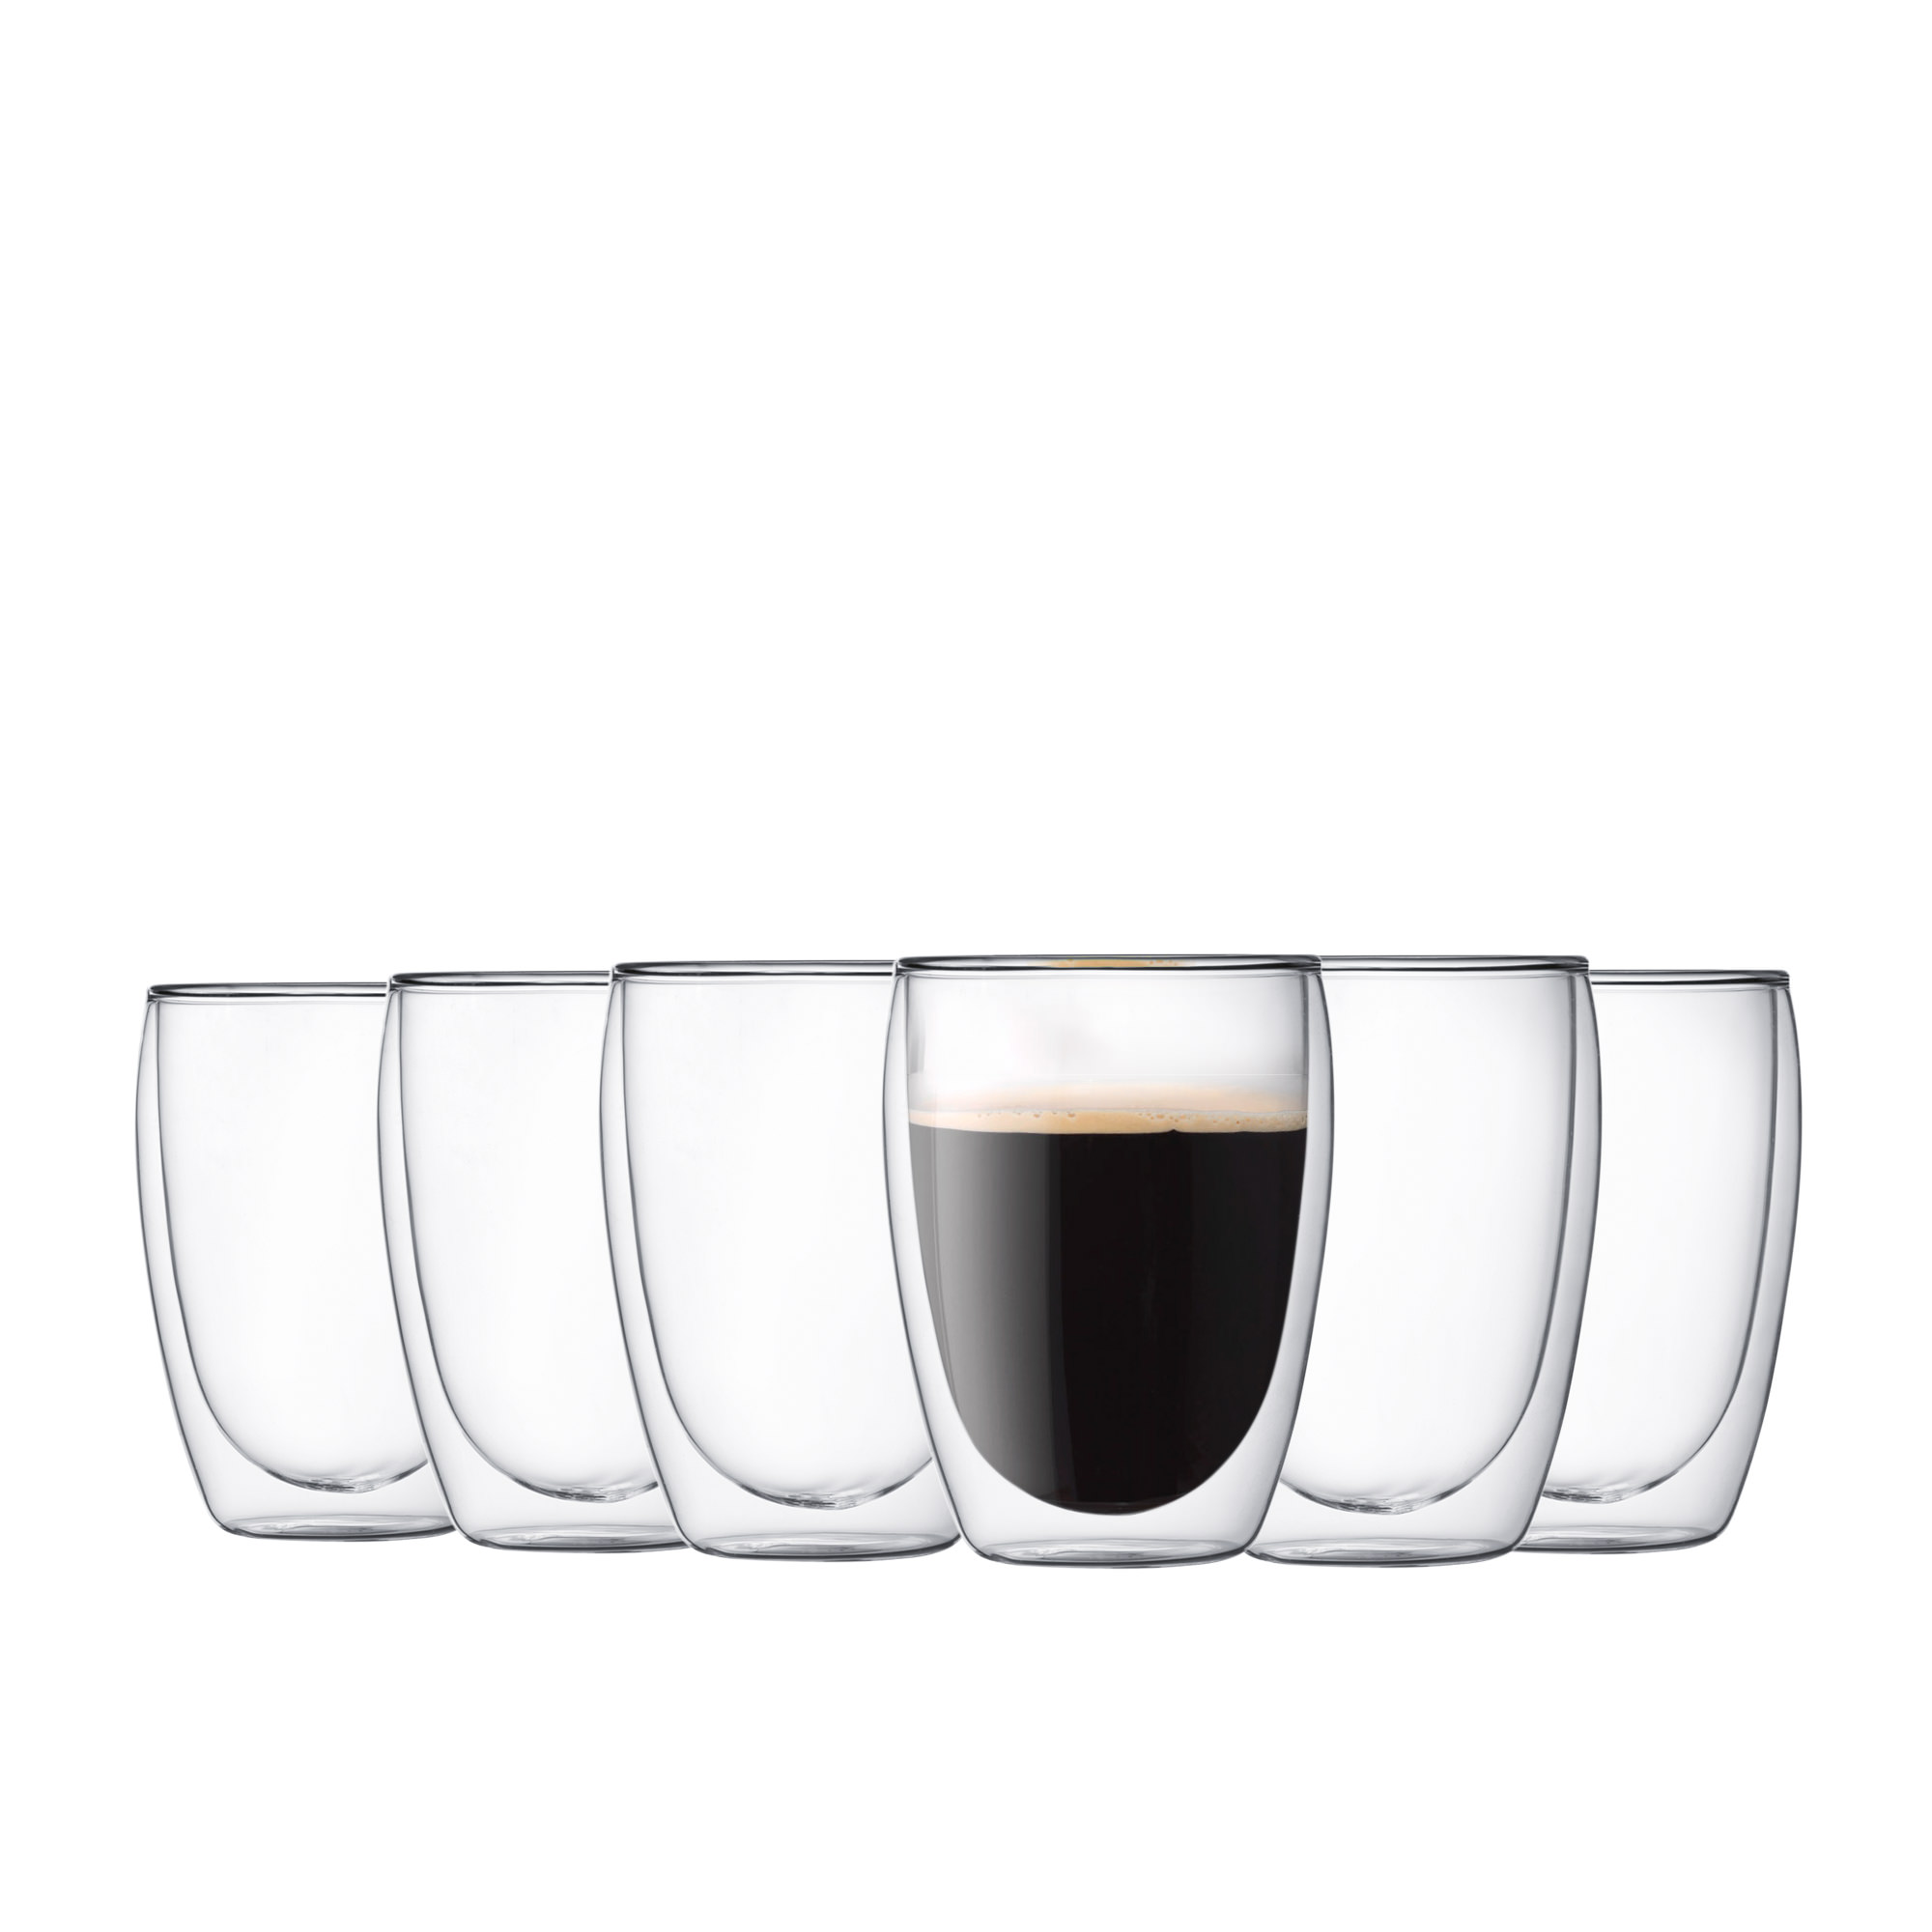 Bodum Pavina Double Wall Glasses 350ml Buy 4 Get 6